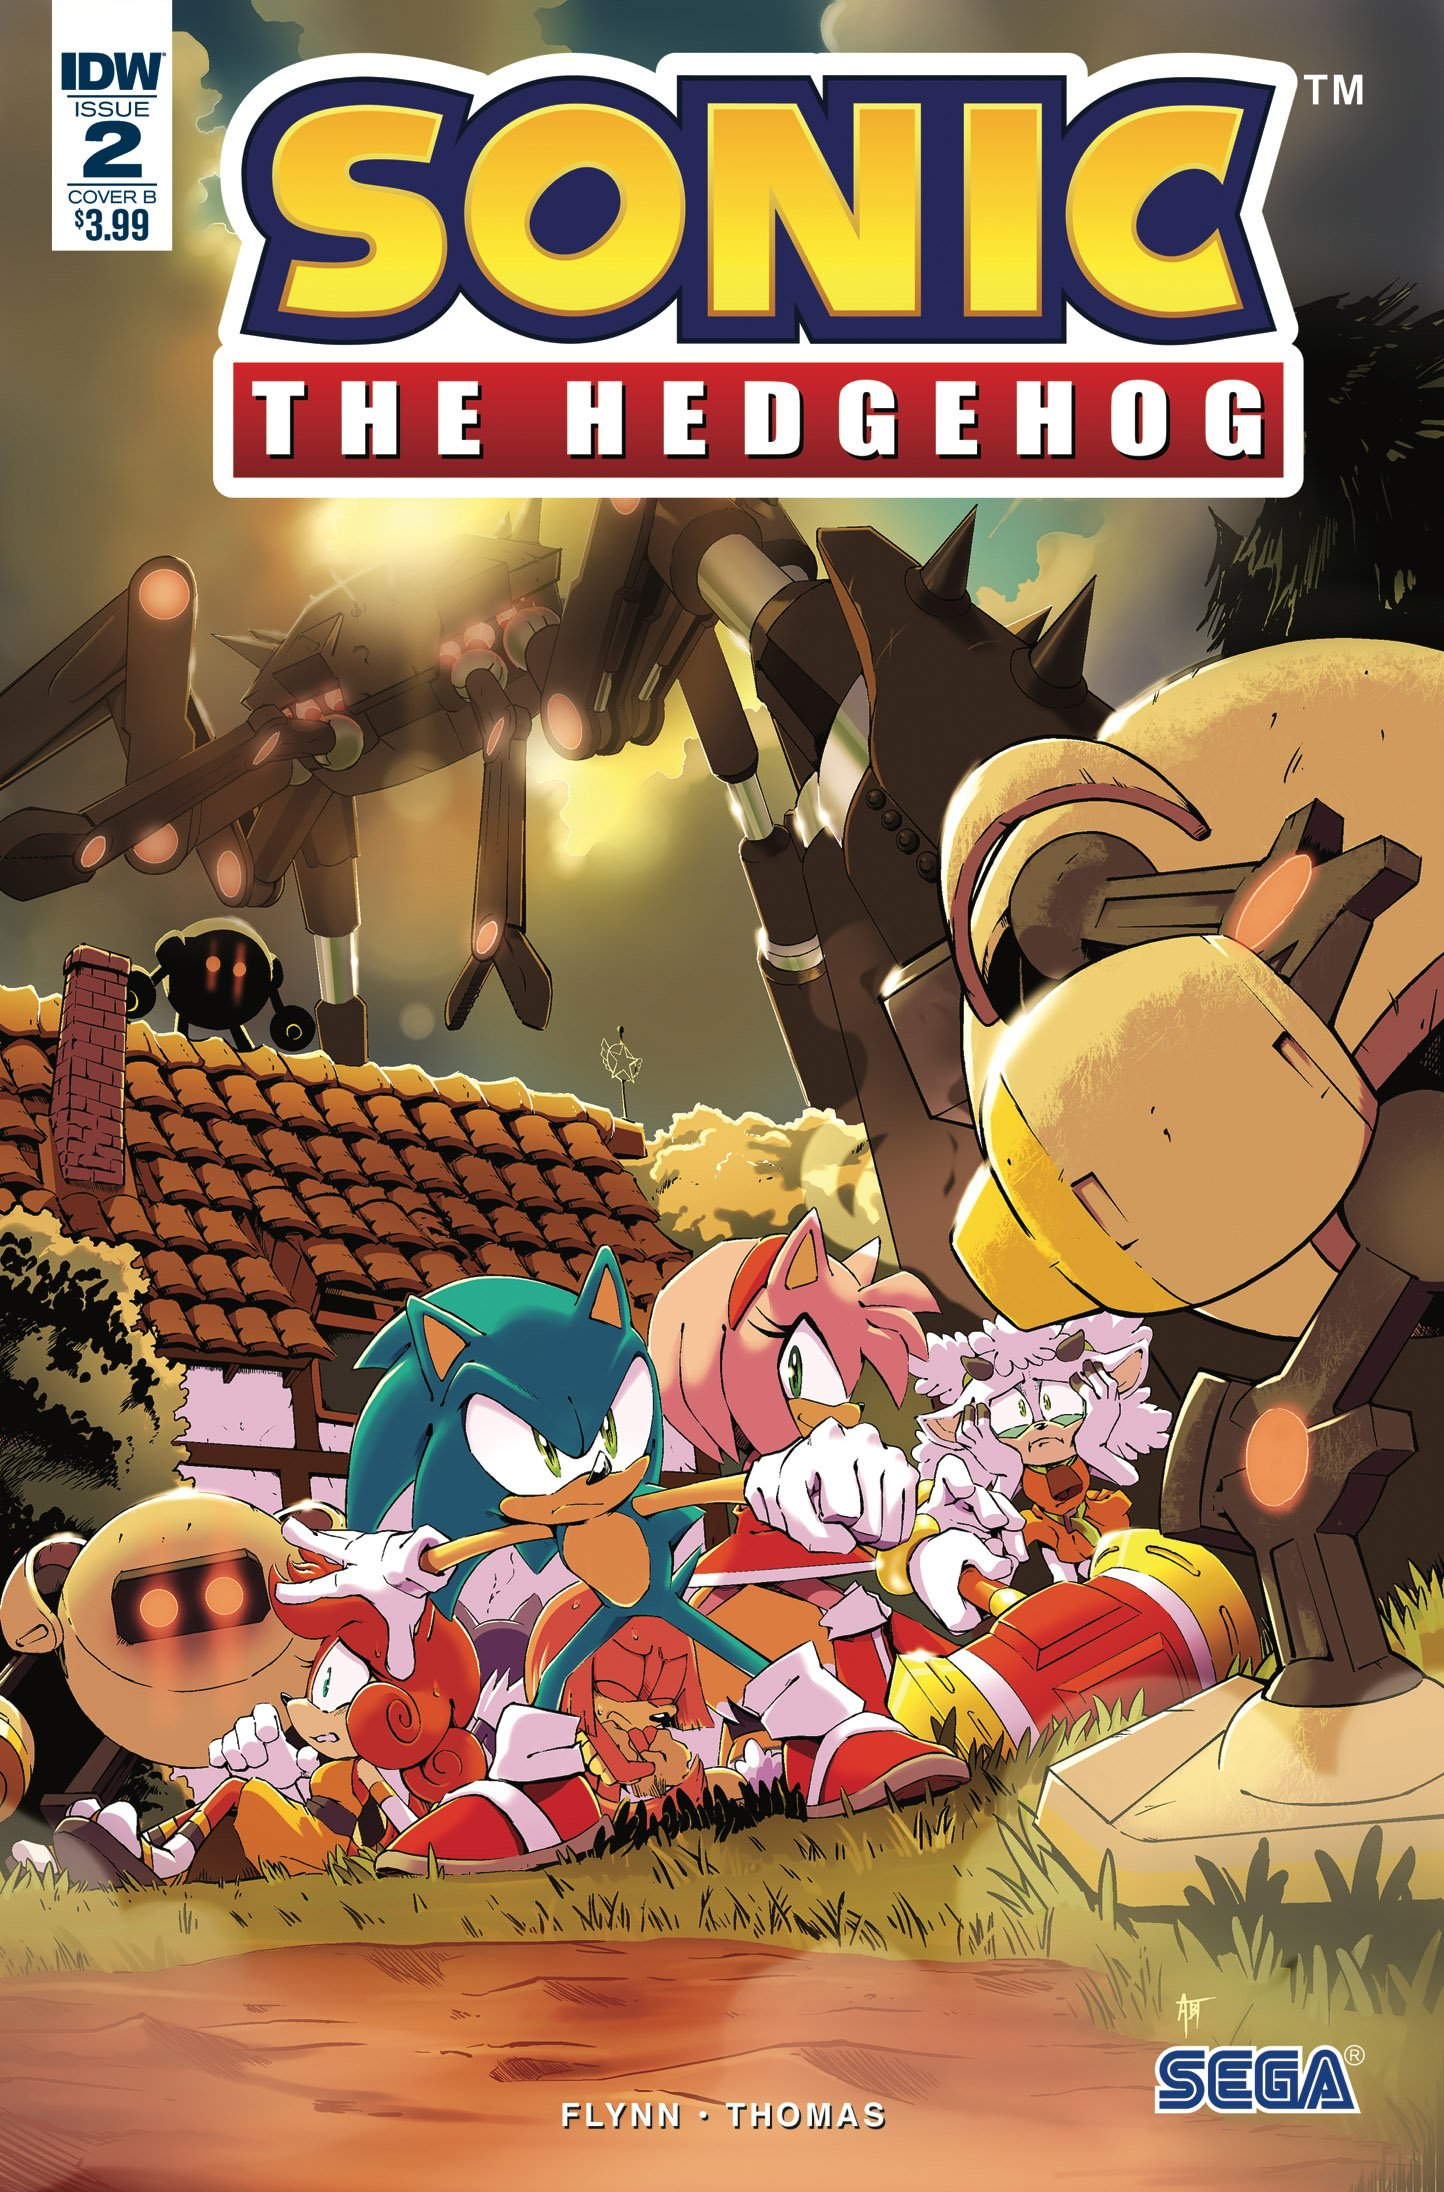 Sonic the Hedgehog 002 (April 2018) (cover b)